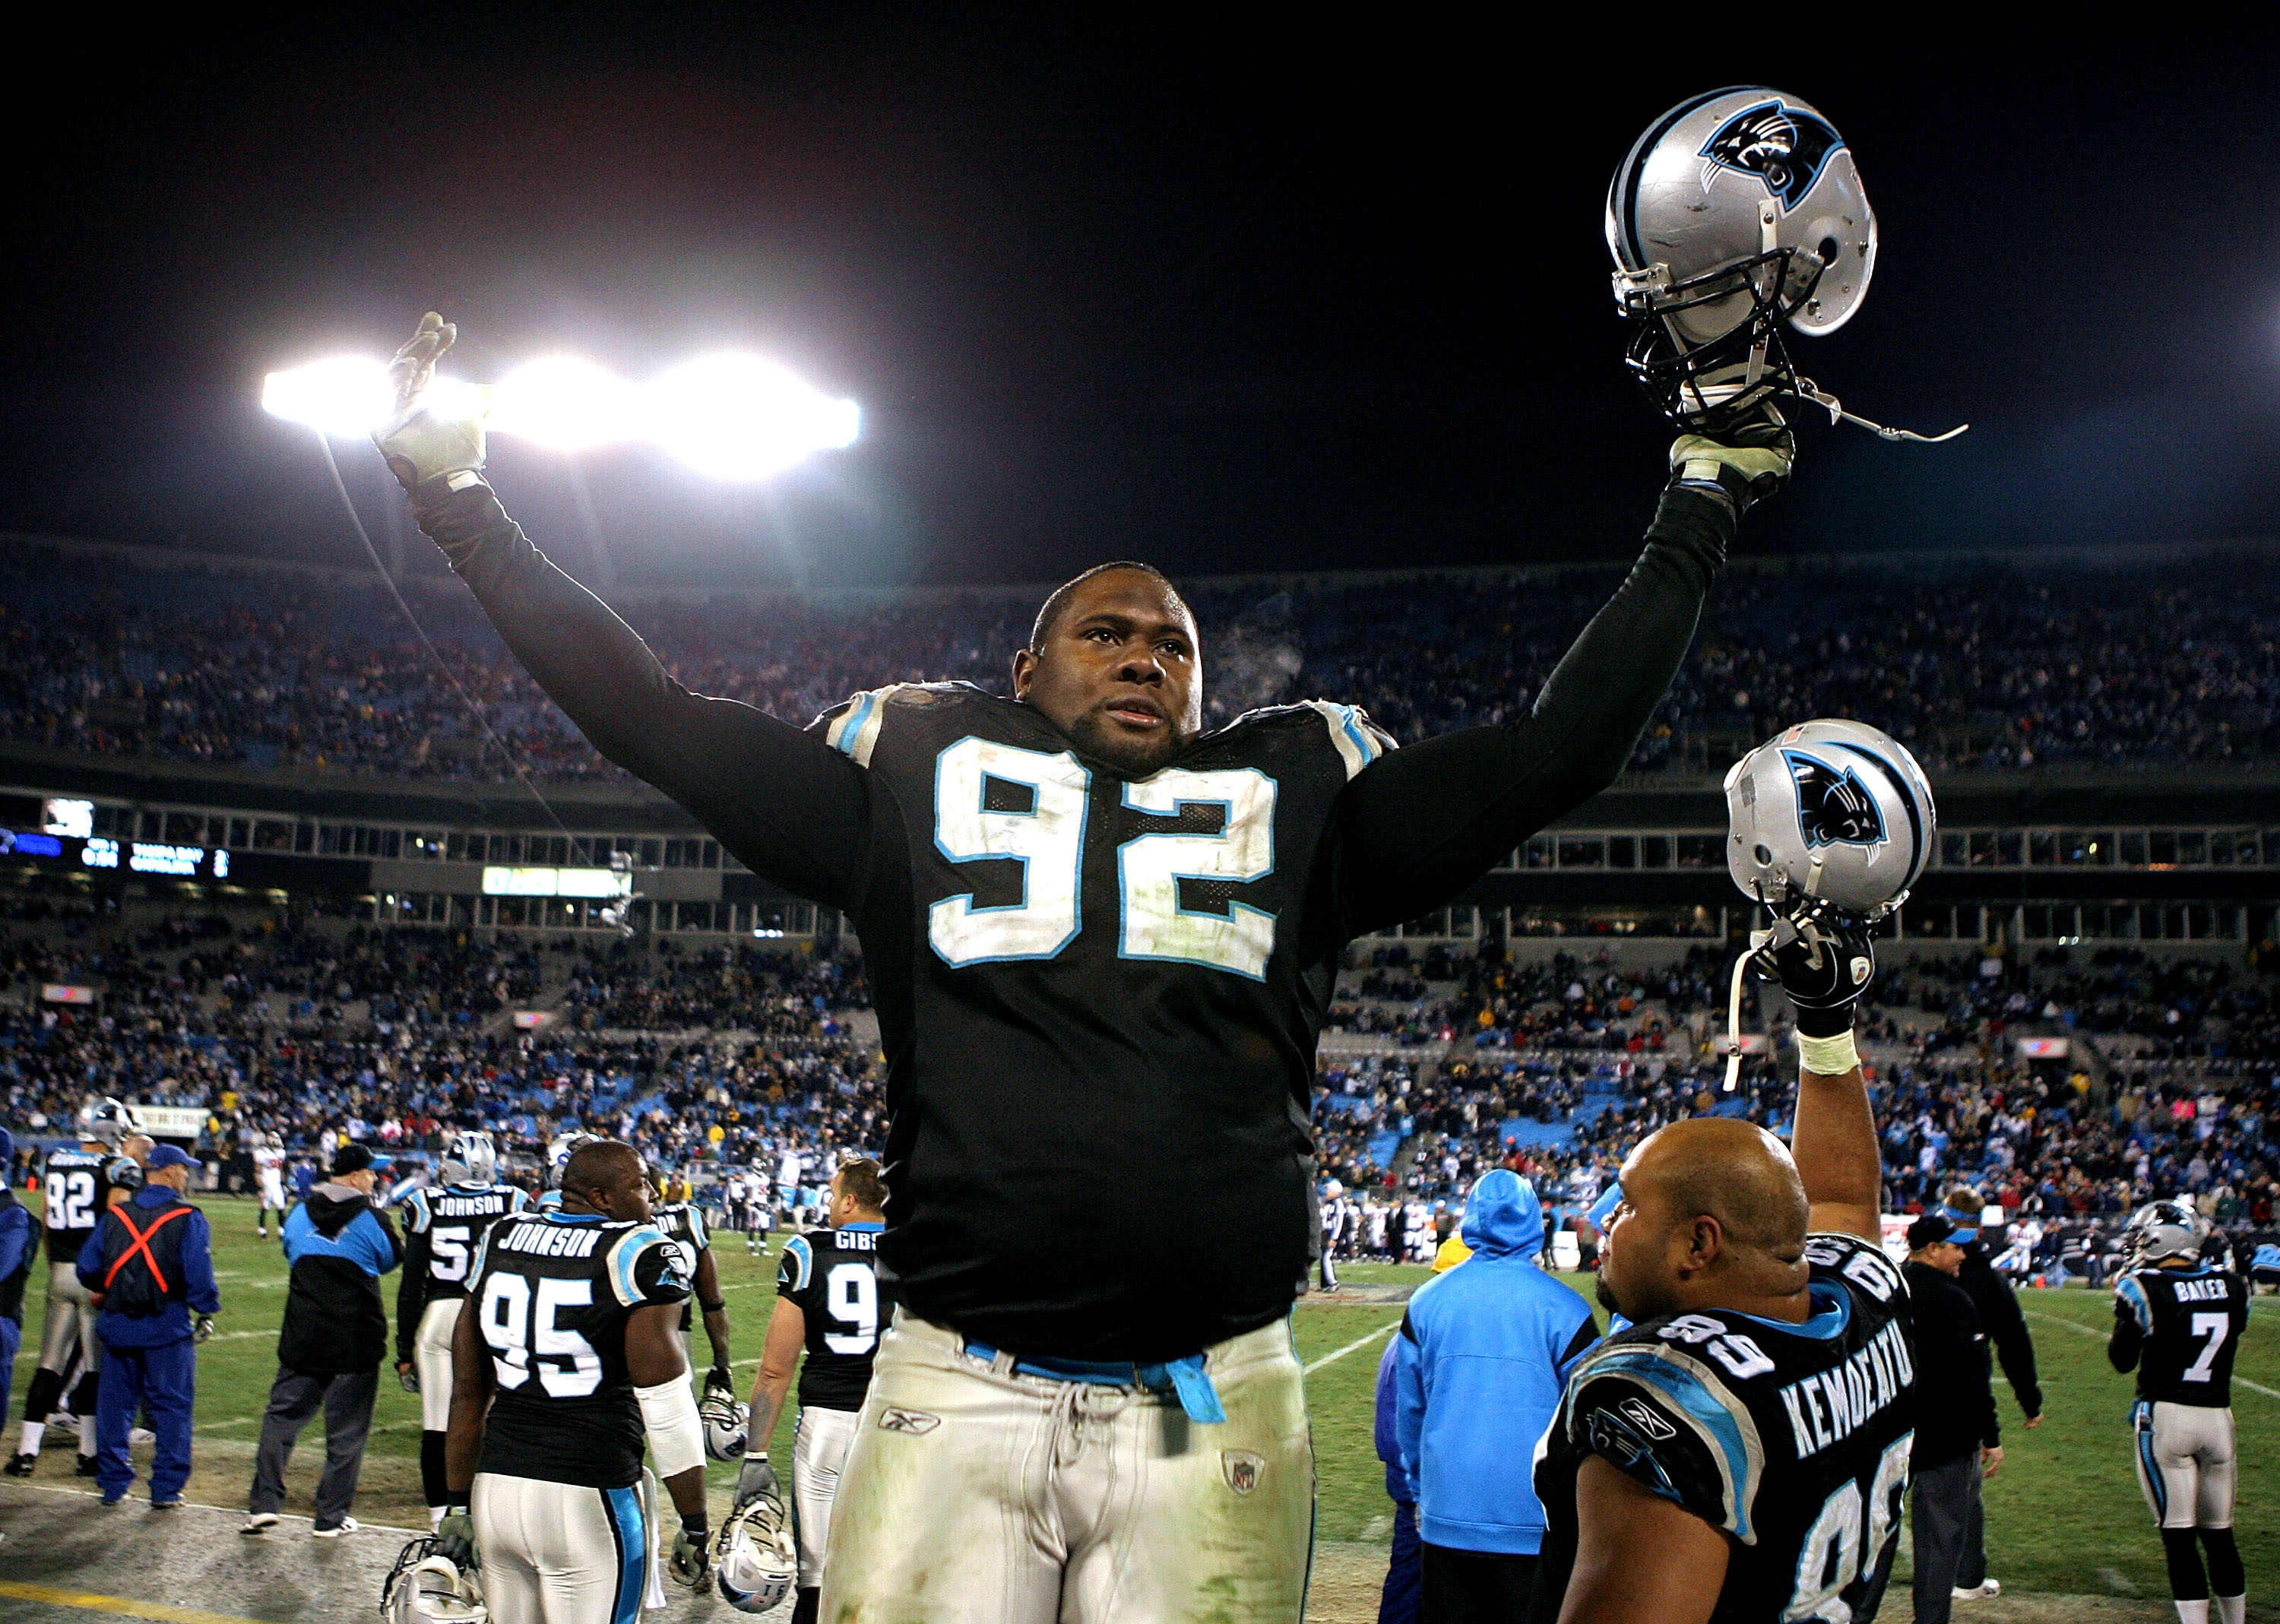 CHARLOTTE, NC - DECEMBER 08:  Damione Lewis #92 of the Carolina Panthers celebrates a win over the Tampa Bay Buccaneers at Bank of America Stadium on December 8, 2008 in Charlotte, North Carolina. The Panthers won 38-23.  (Photo by Streeter Lecka/Getty Im